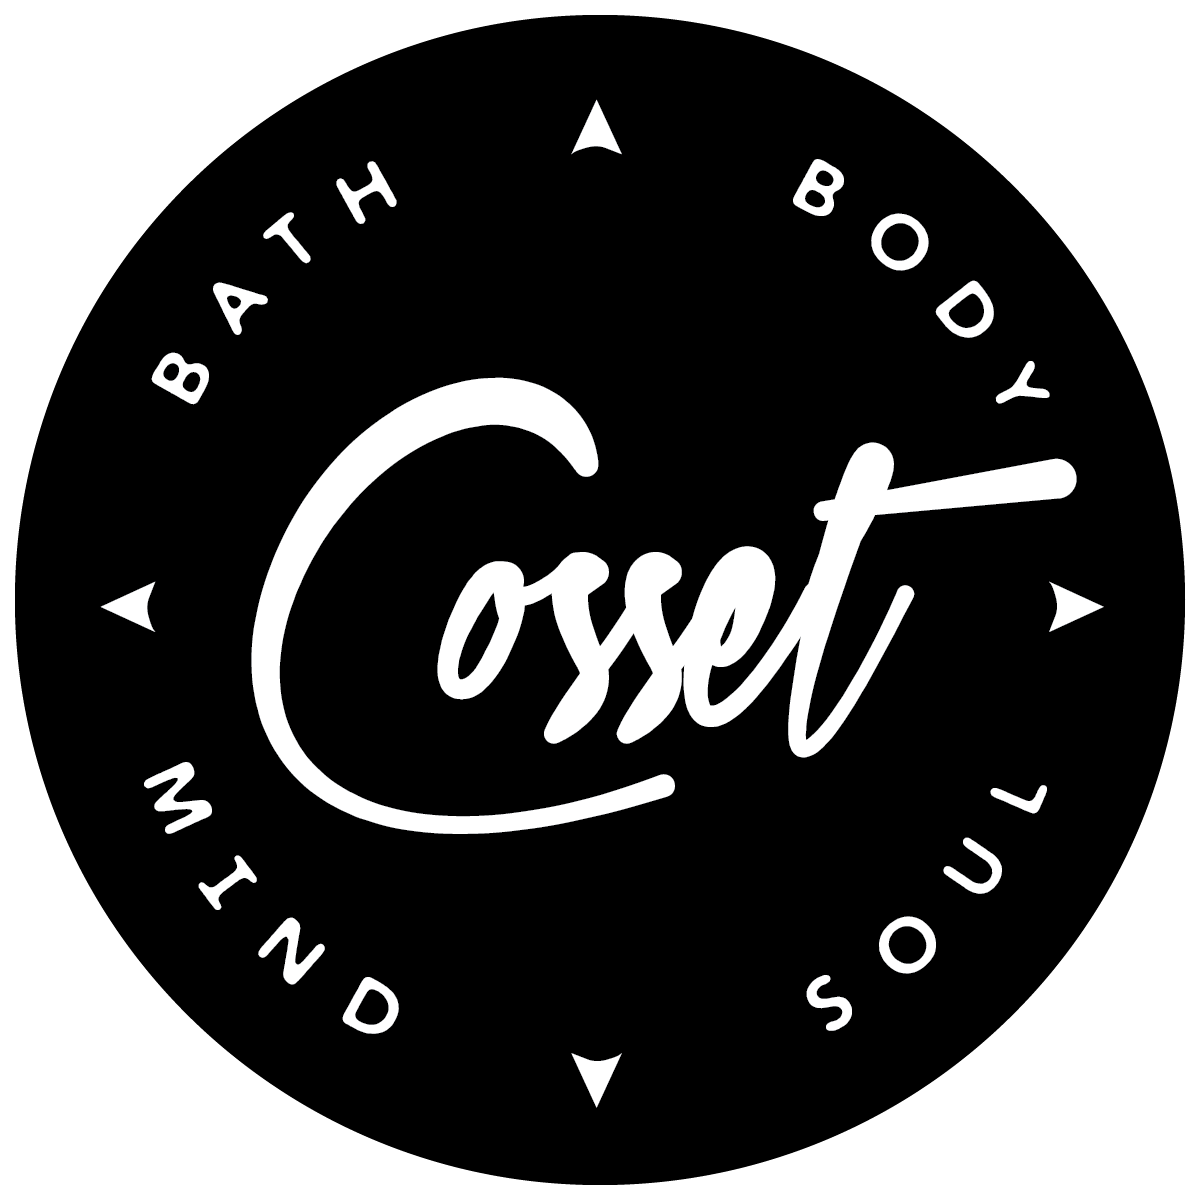 Cosset Bath and Body logo